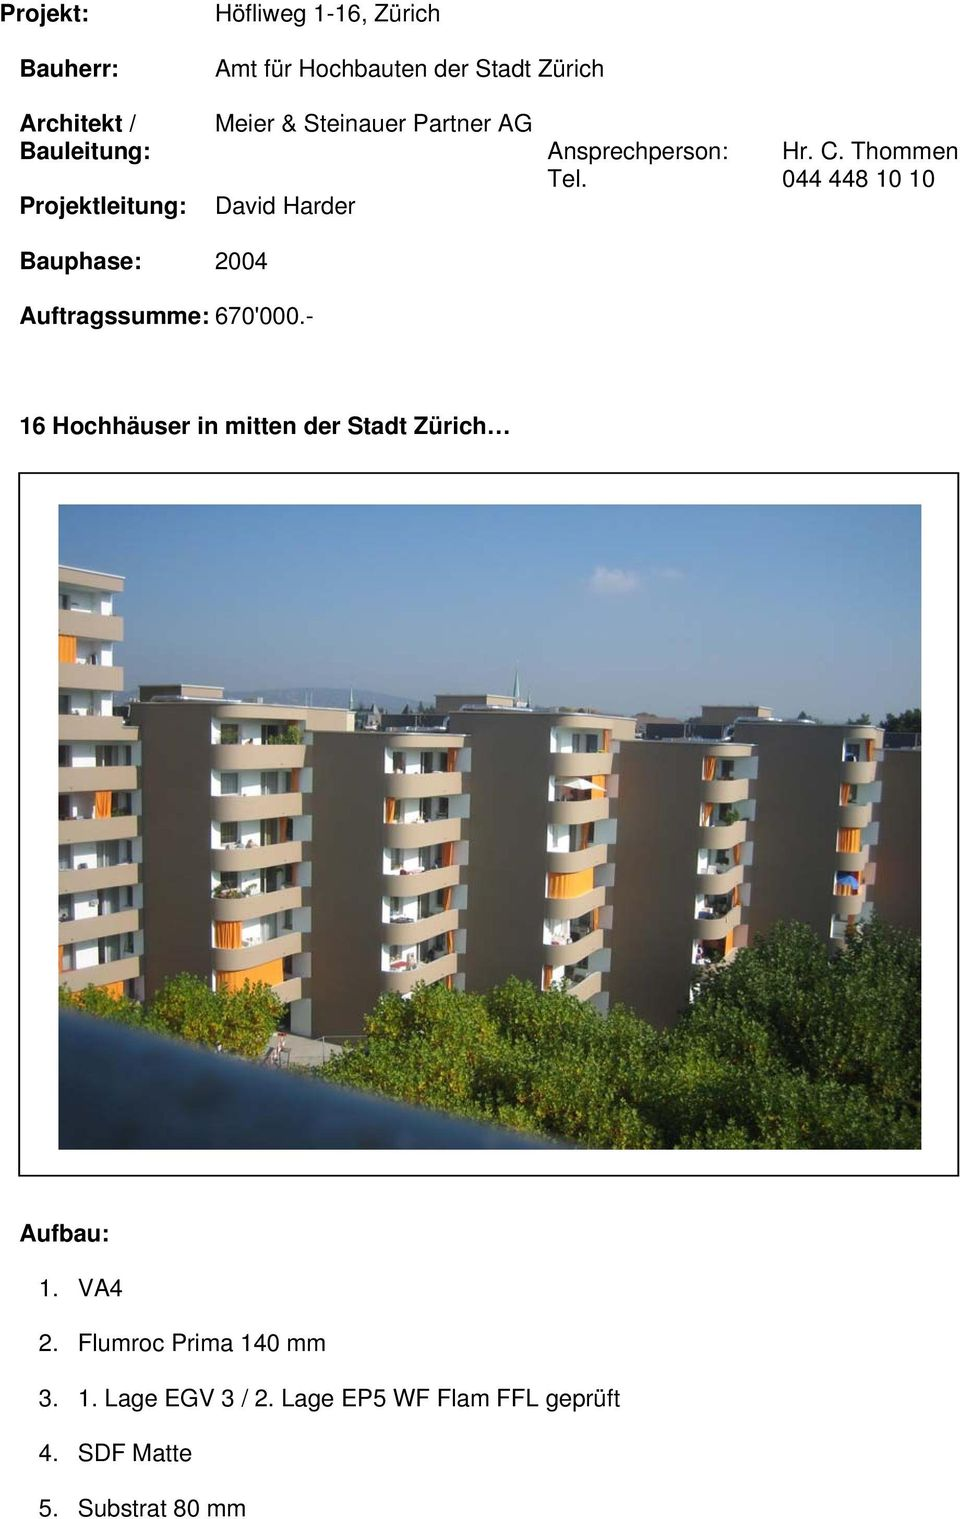 044 448 10 10 David Harder Bauphase: 2004 Auftragssumme: 670'000.